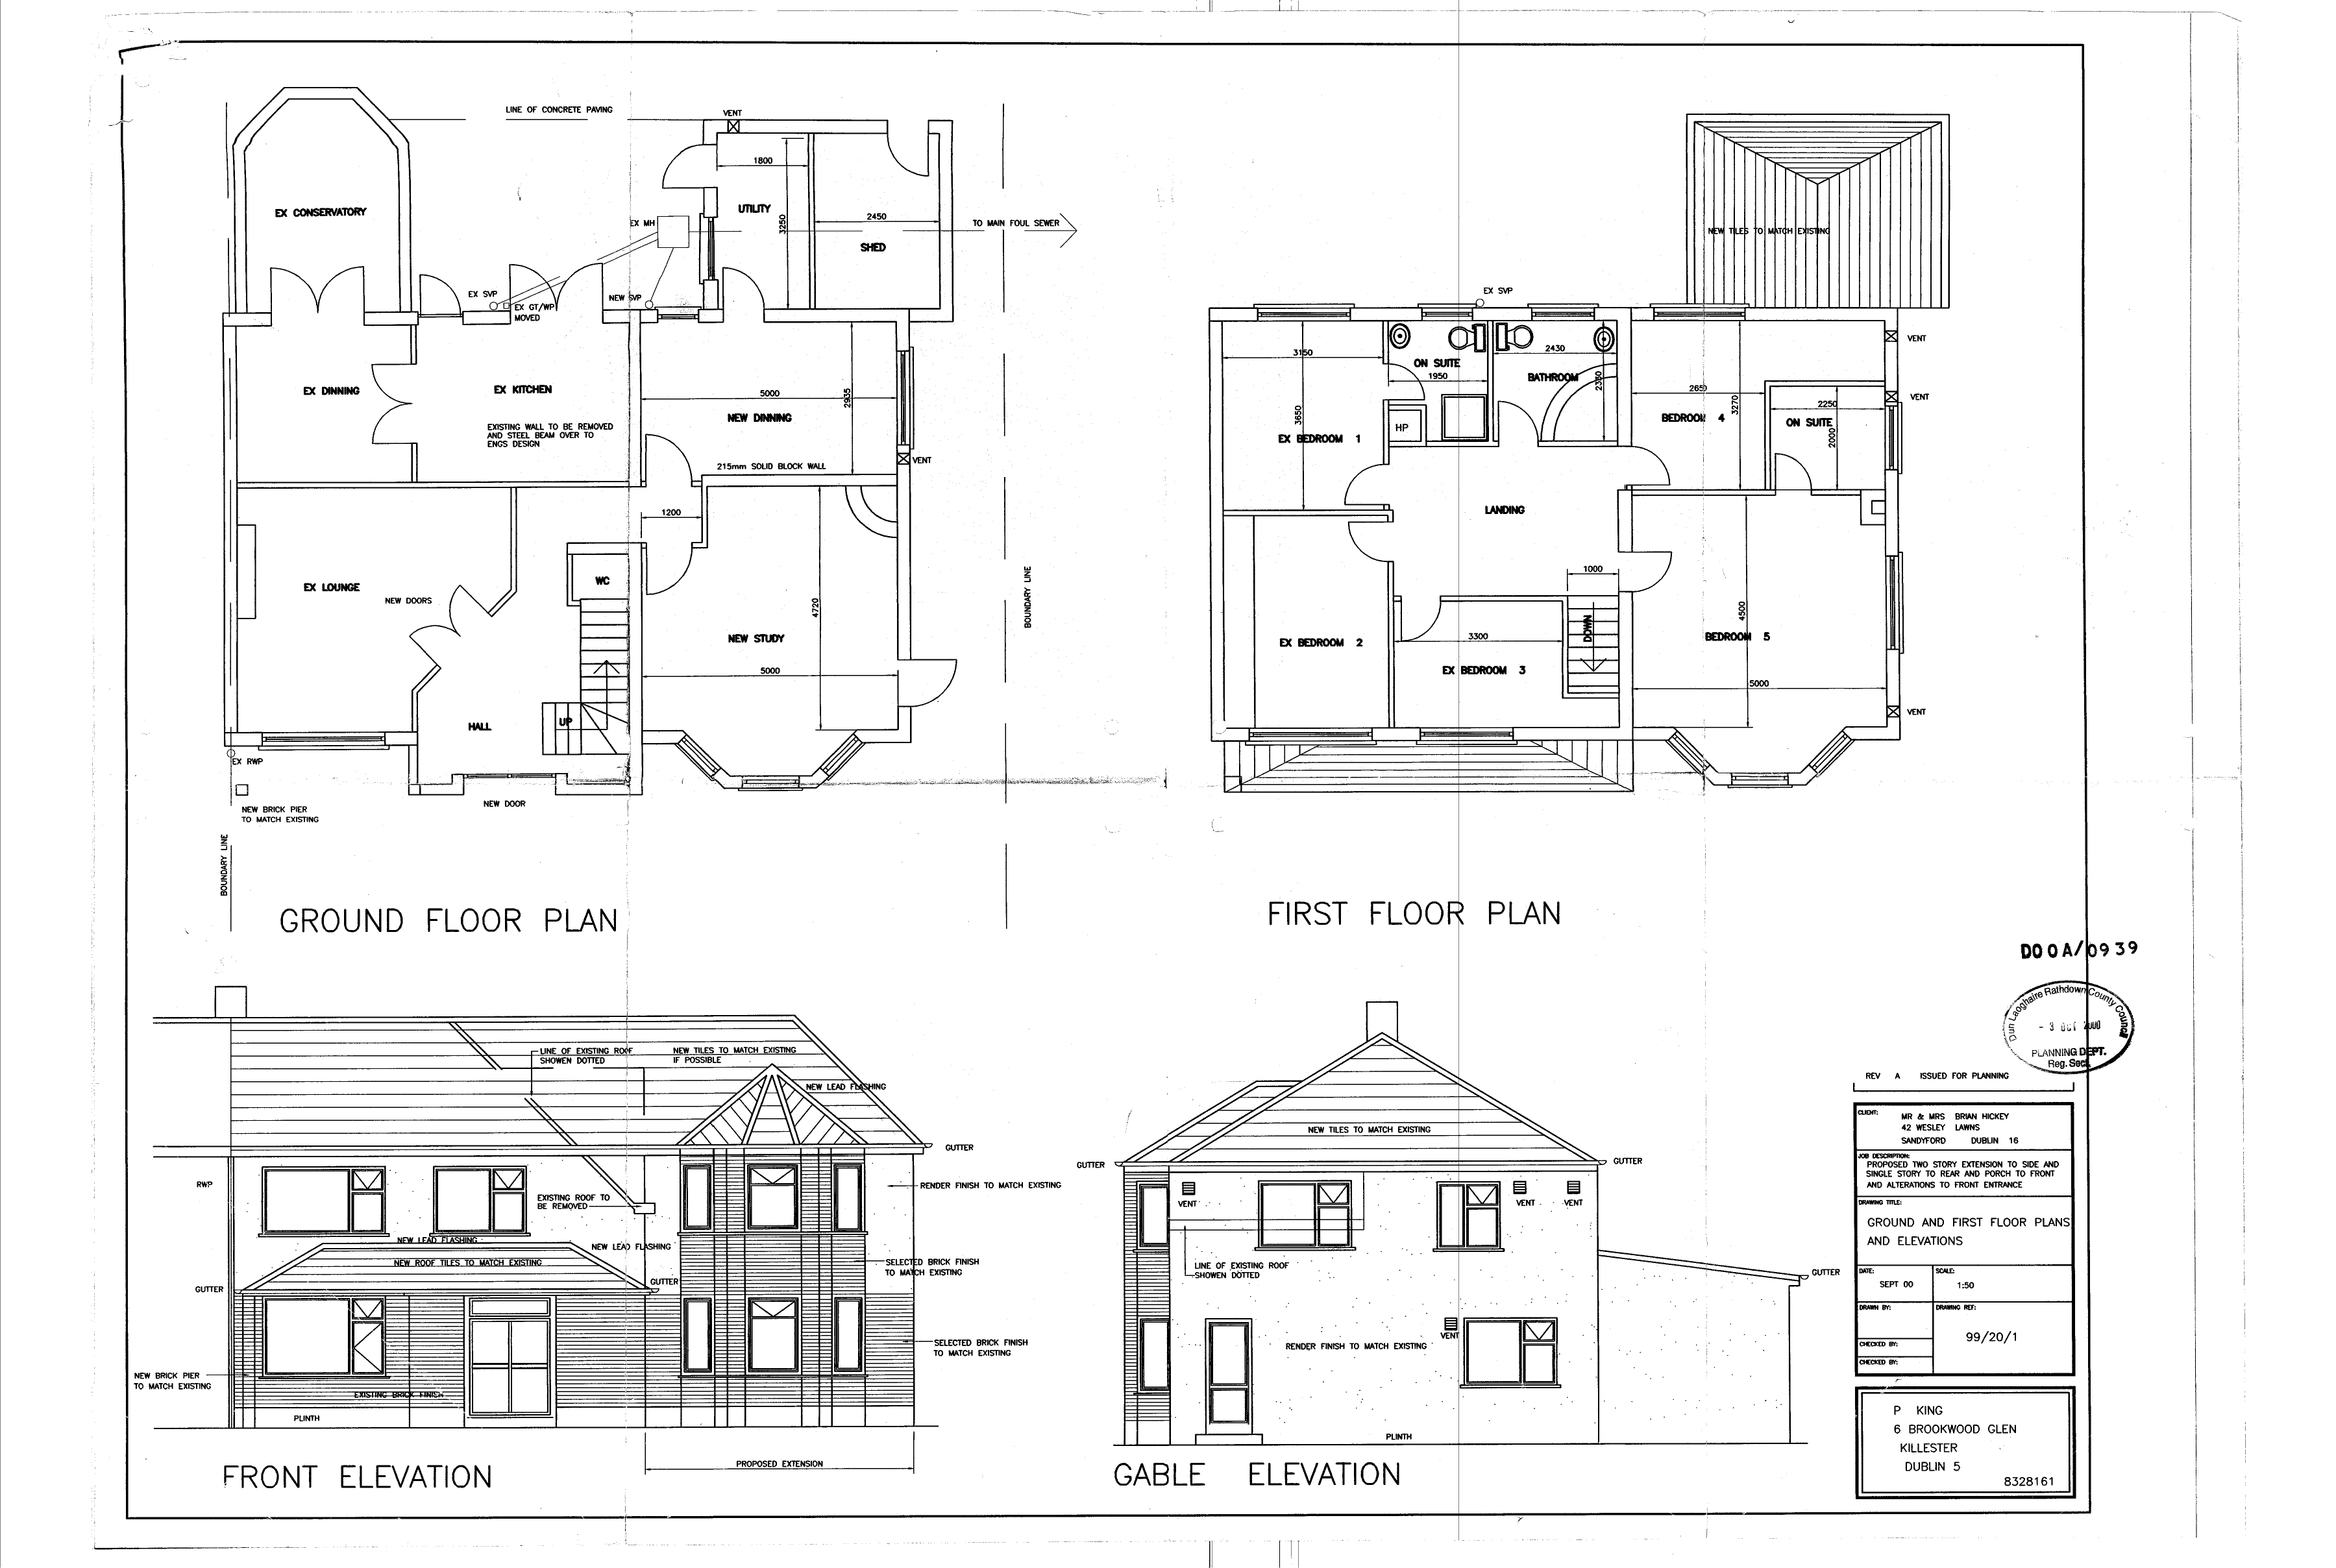 Floor Plan And Elevation Symbols : Floor plan and elevation drawings house plans